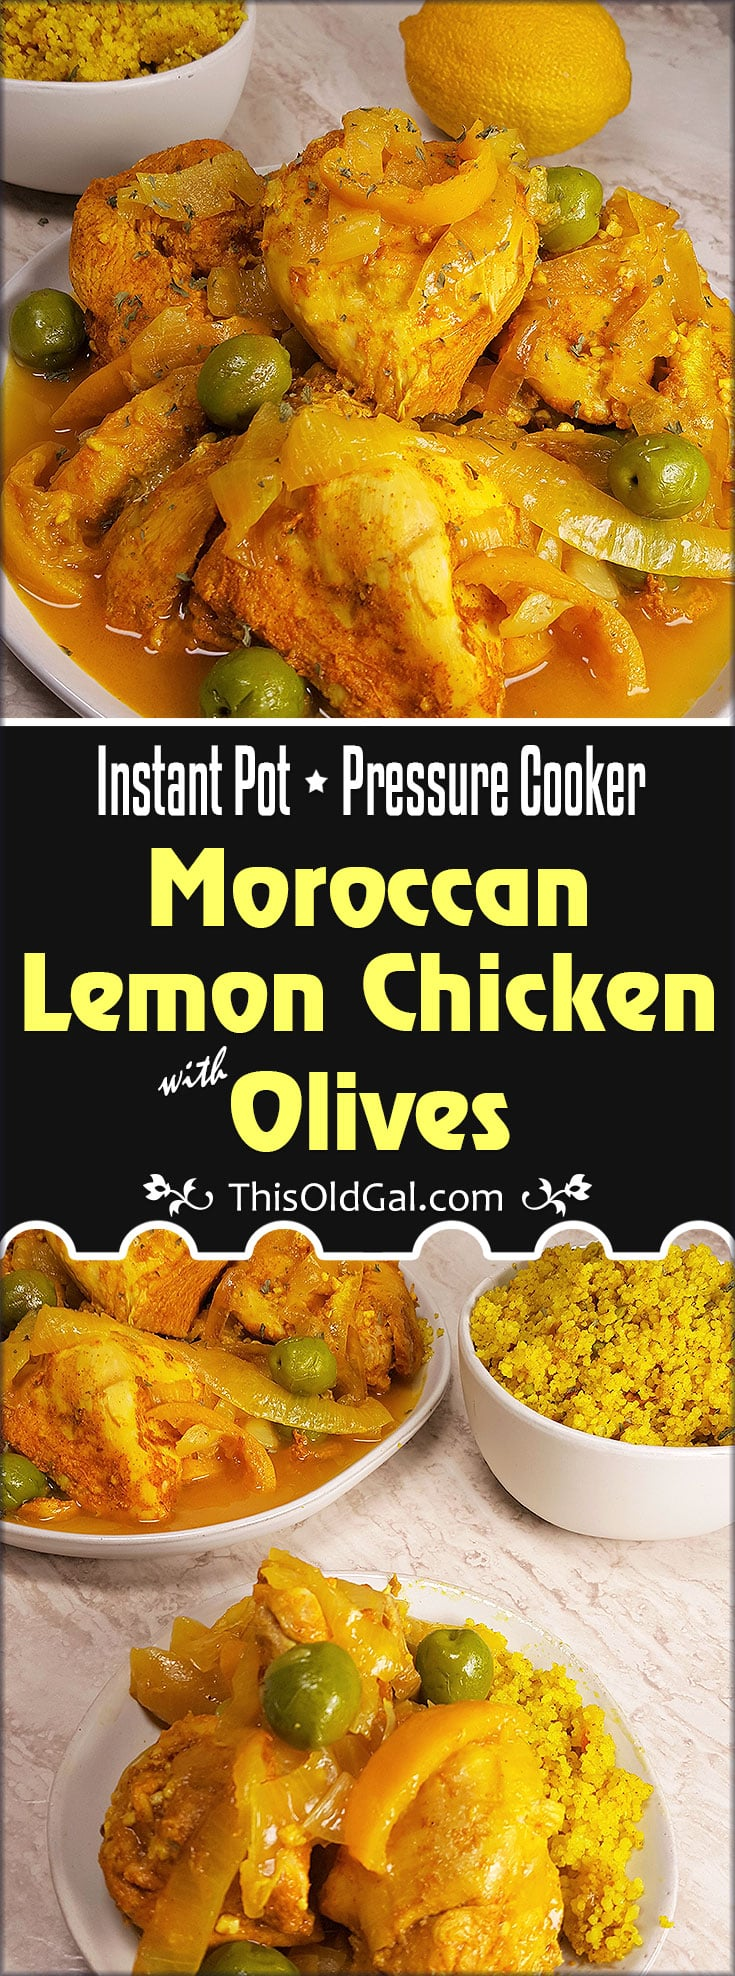 Instant Pot Pressure Cooker Moroccan Lemon Chicken with Olives